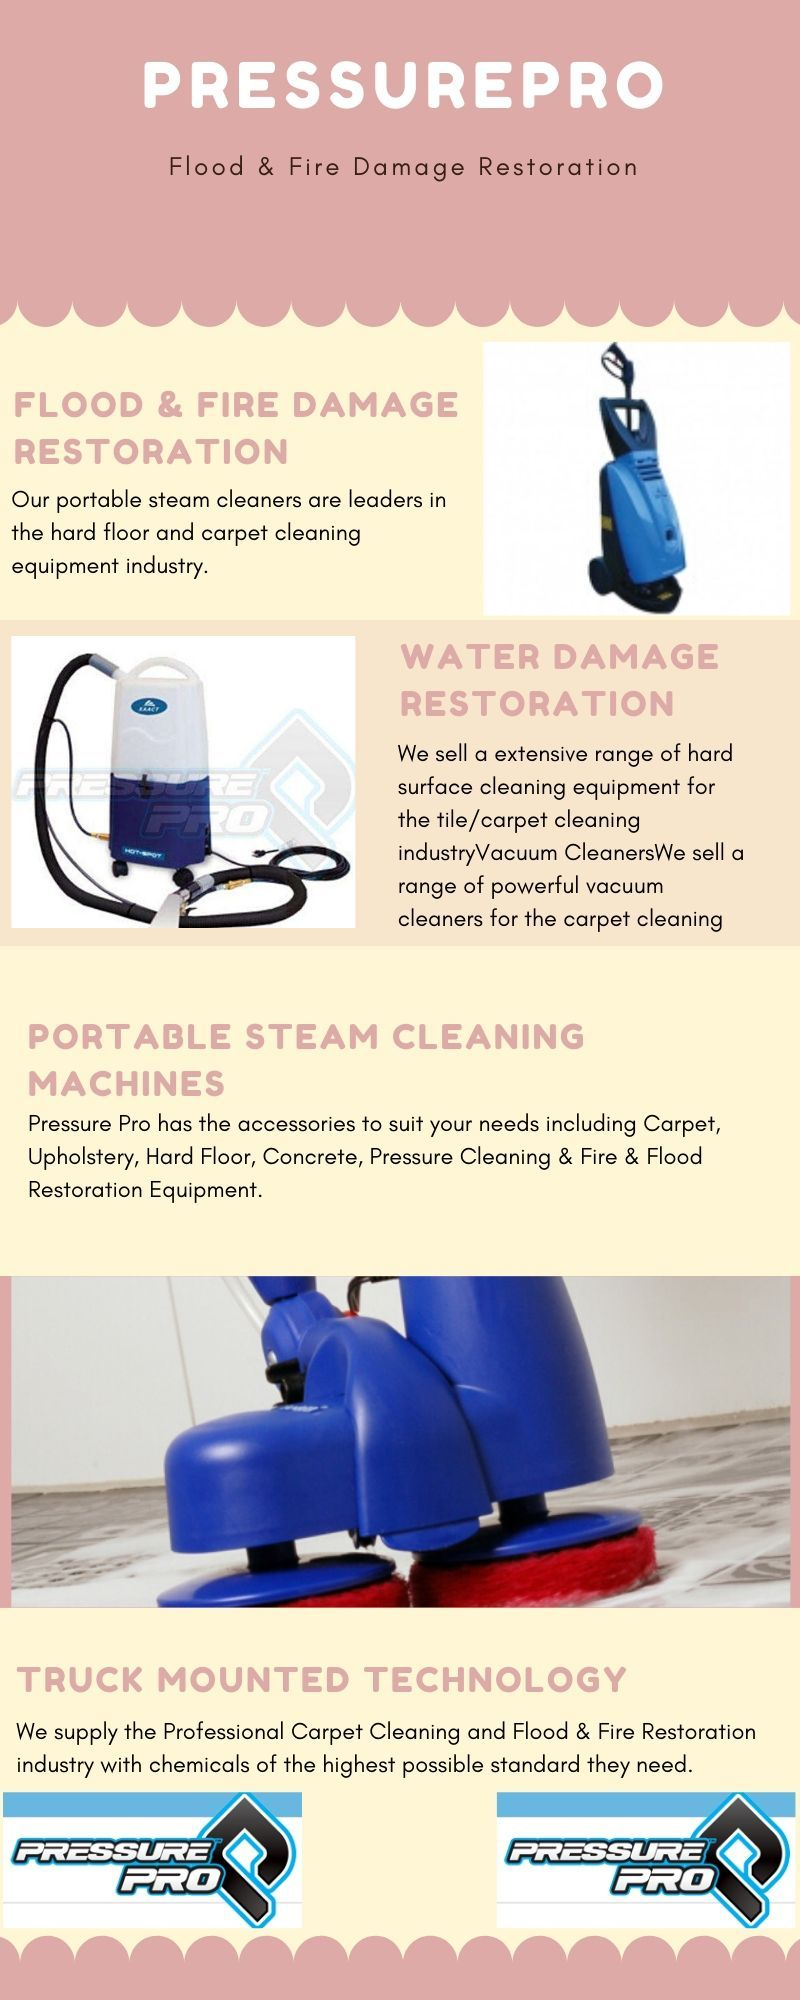 Dehumidifier With Air Cooled Condenser Vacuums How To Clean Carpet Carpet Cleaning Equipment